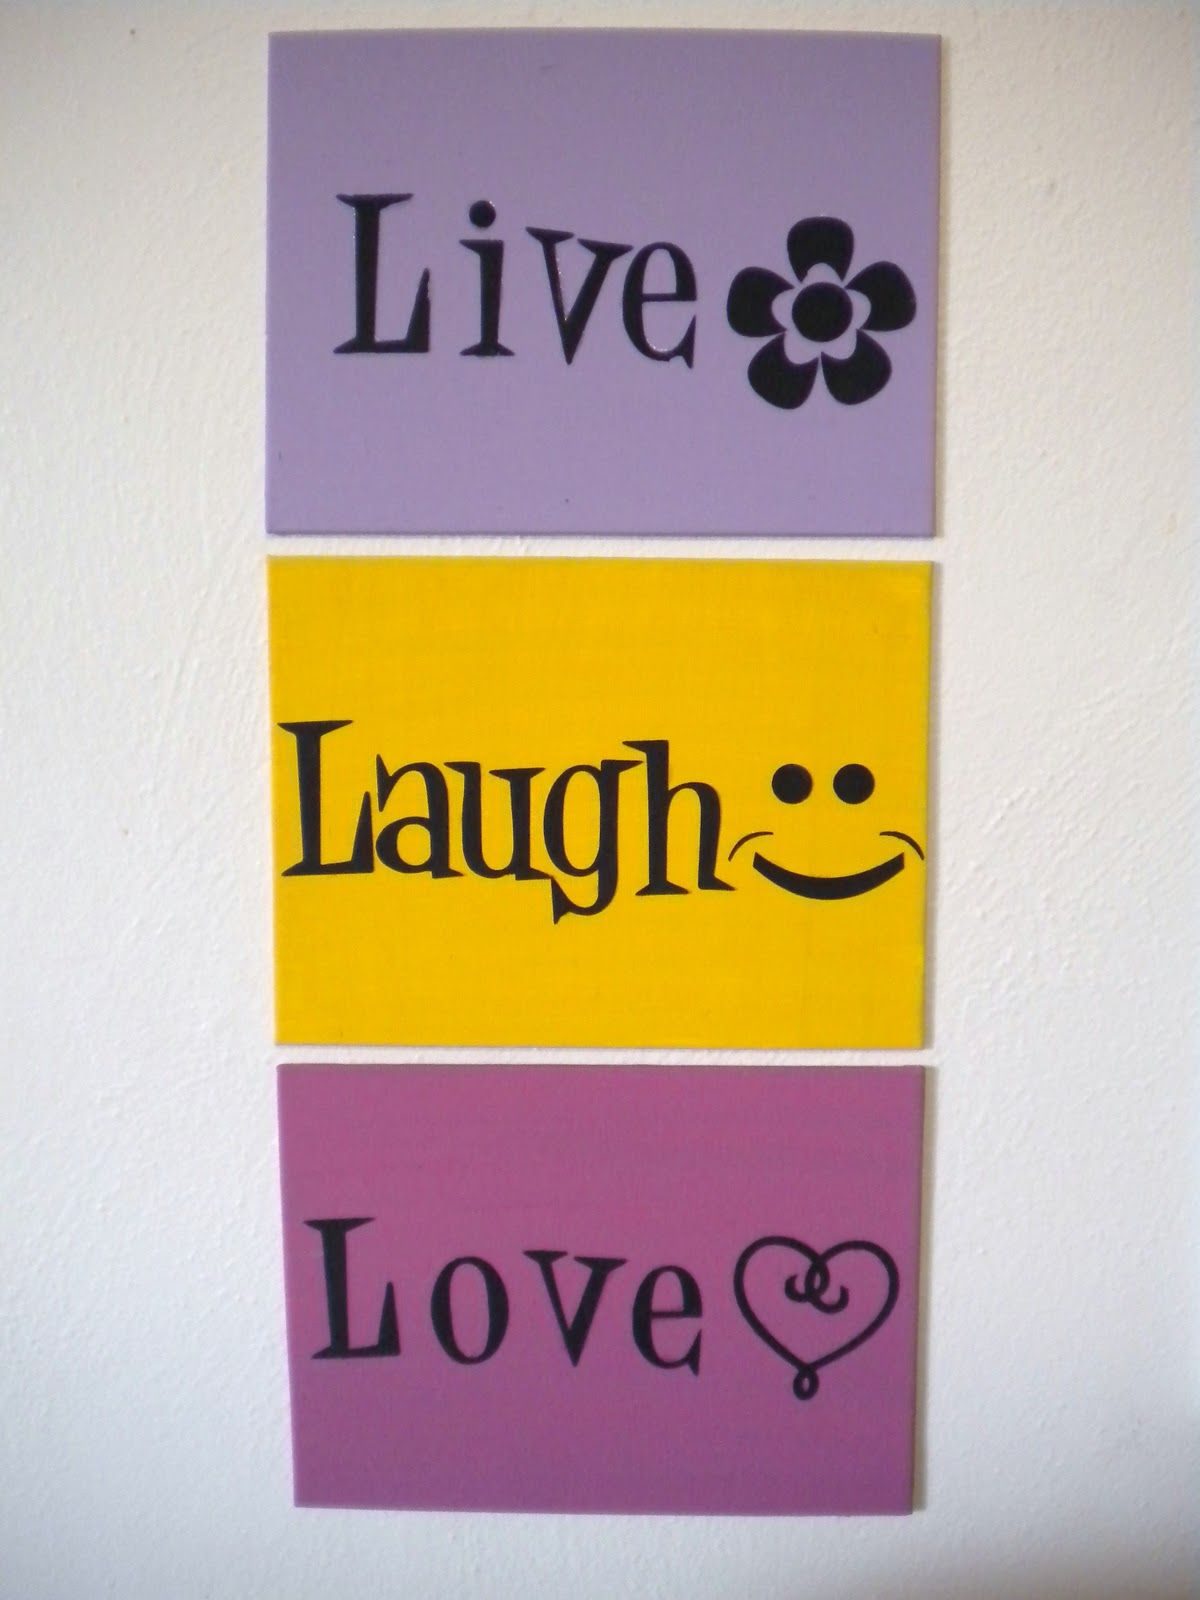 Diy Art Live Laugh Love Framesso Happy #Diy #Crafts